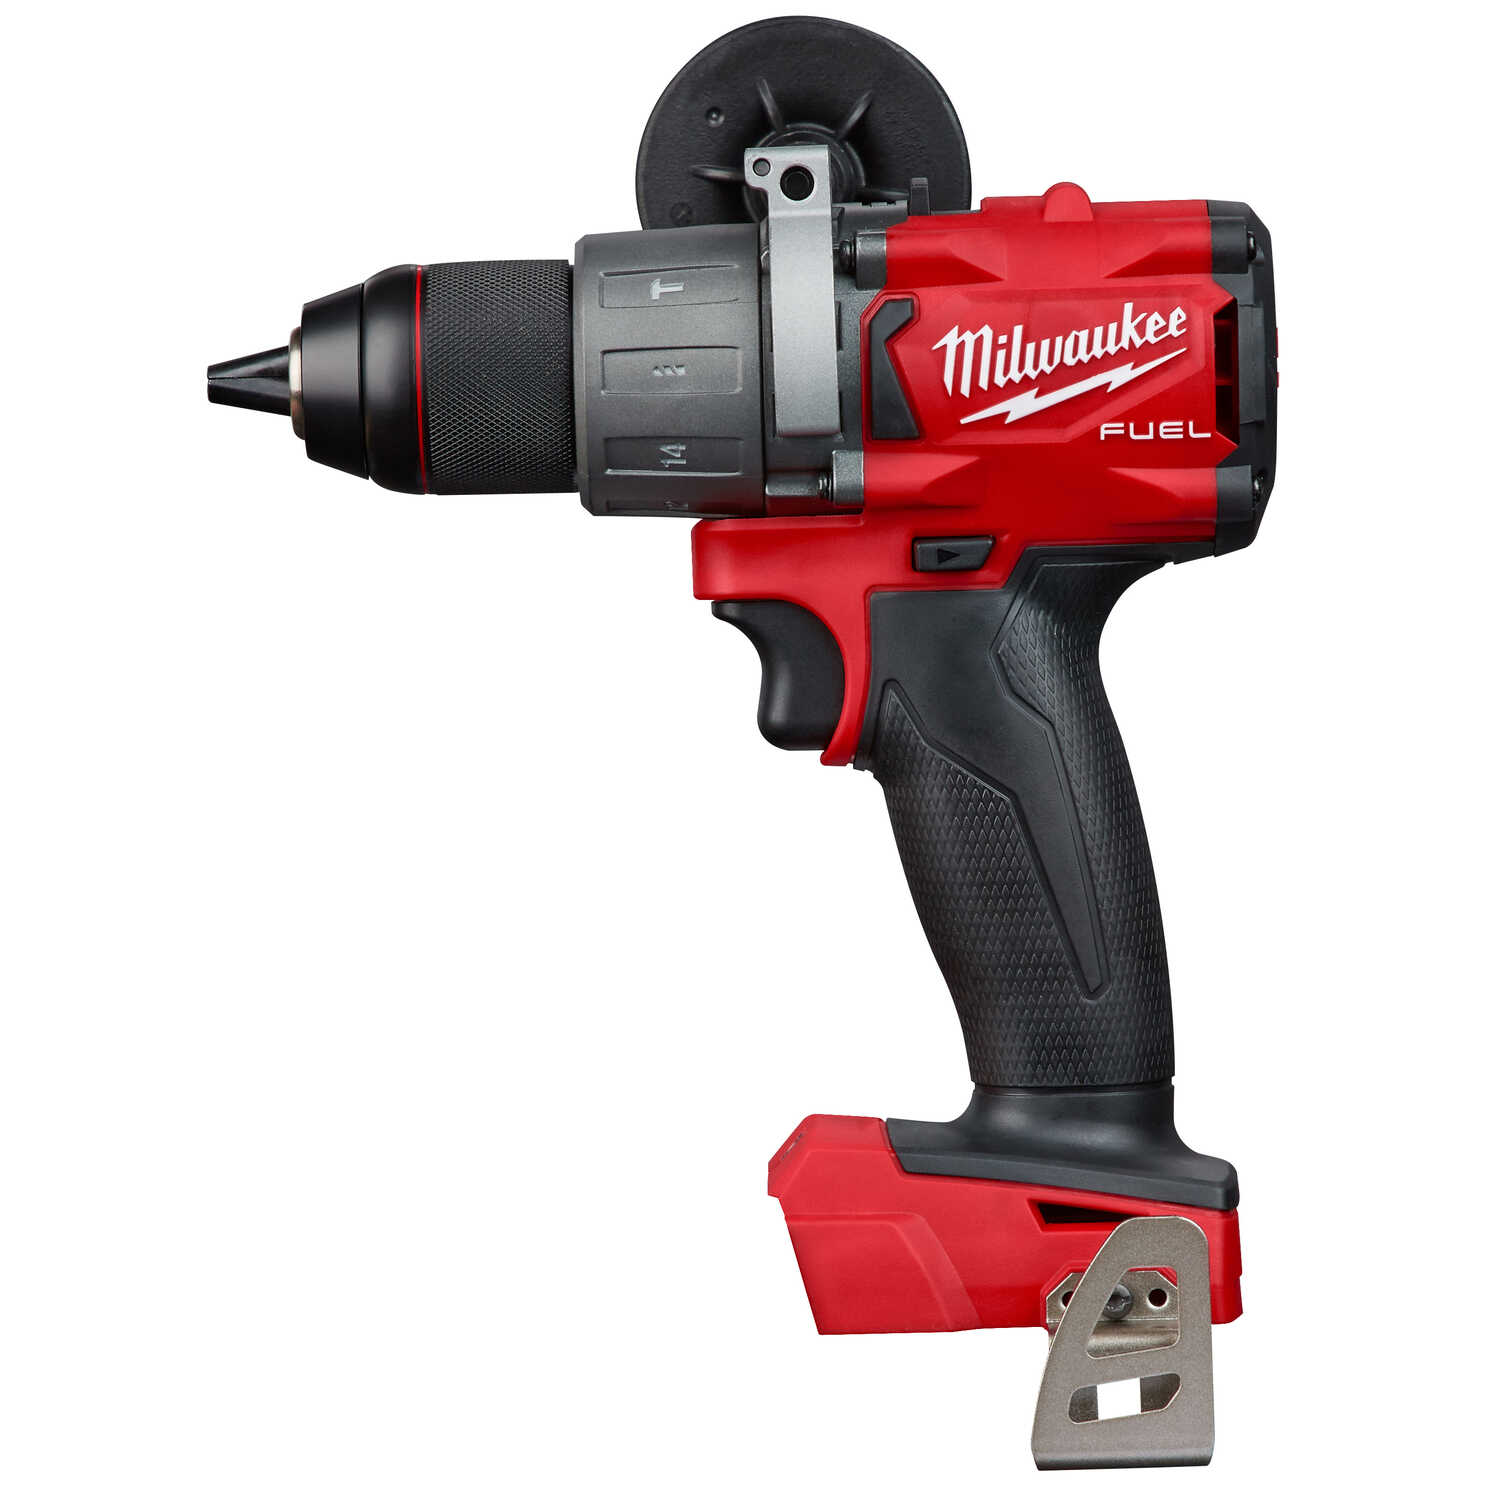 Milwaukee  M18 FUEL  18 volt 1/2 in. Brushless Cordless Hammer Drill/Driver  2000 rpm 32000 bpm 2 sp